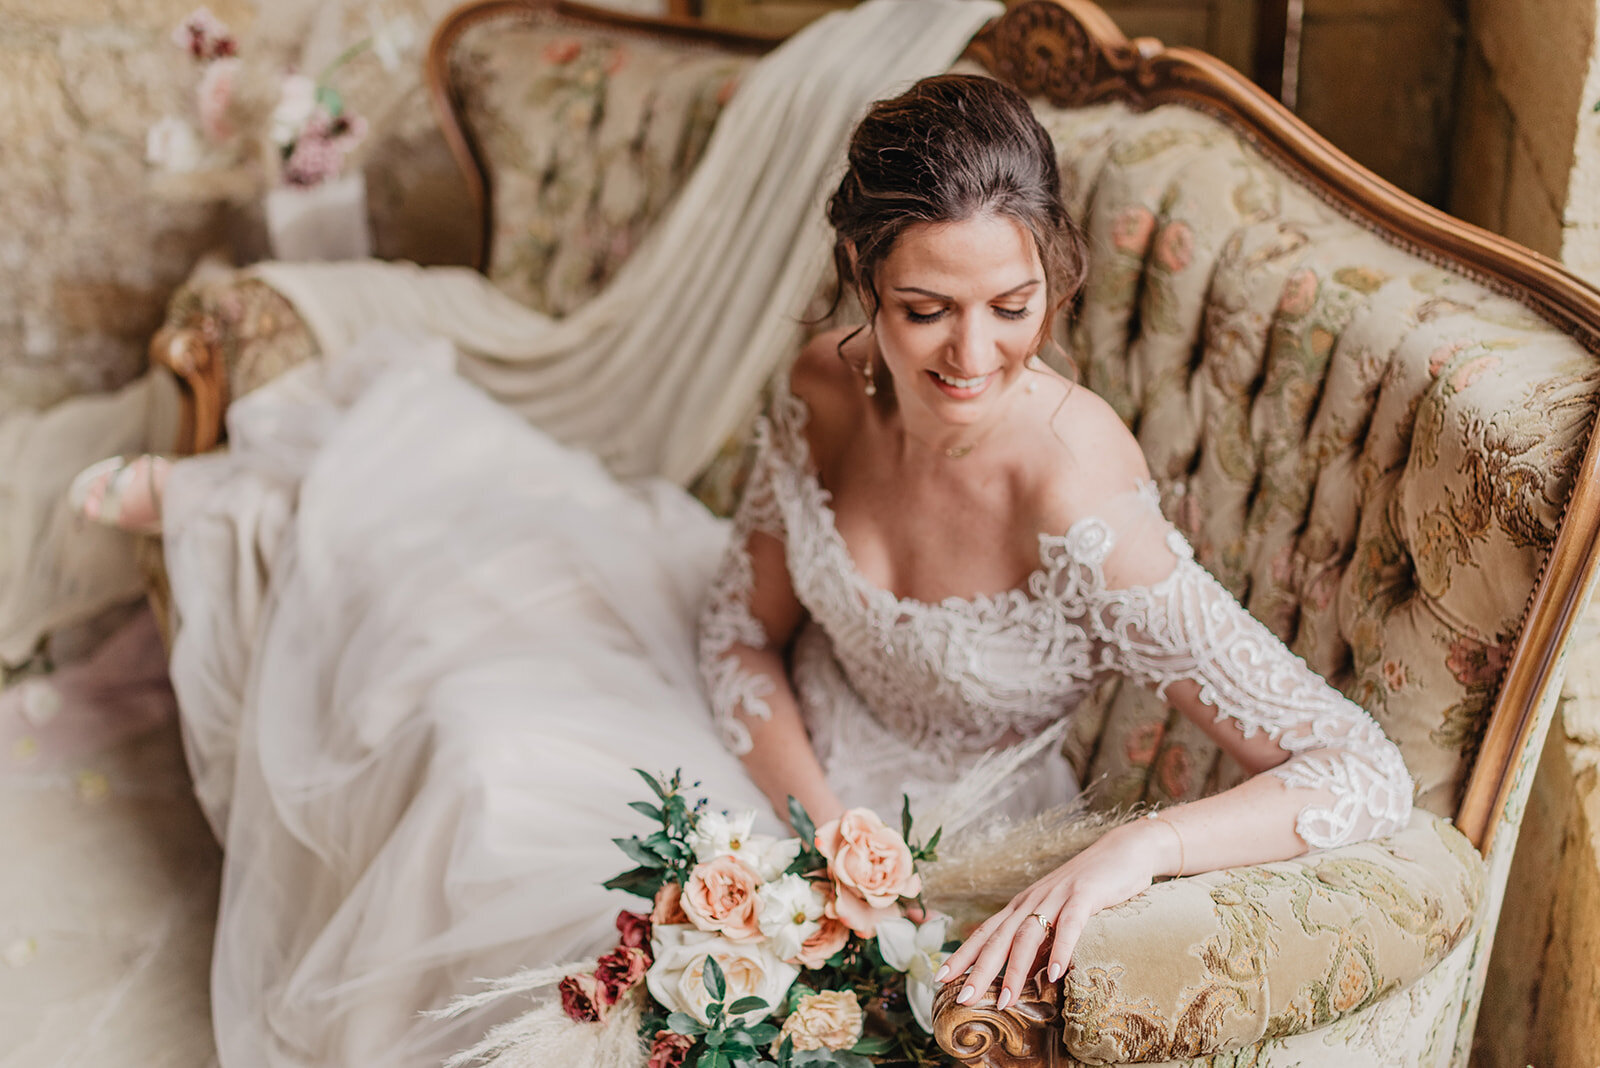 MorganeBallPhotography-Inspimariage-Chateau-ThonneLesPres-LovelyInstants-Bride-1179_websize